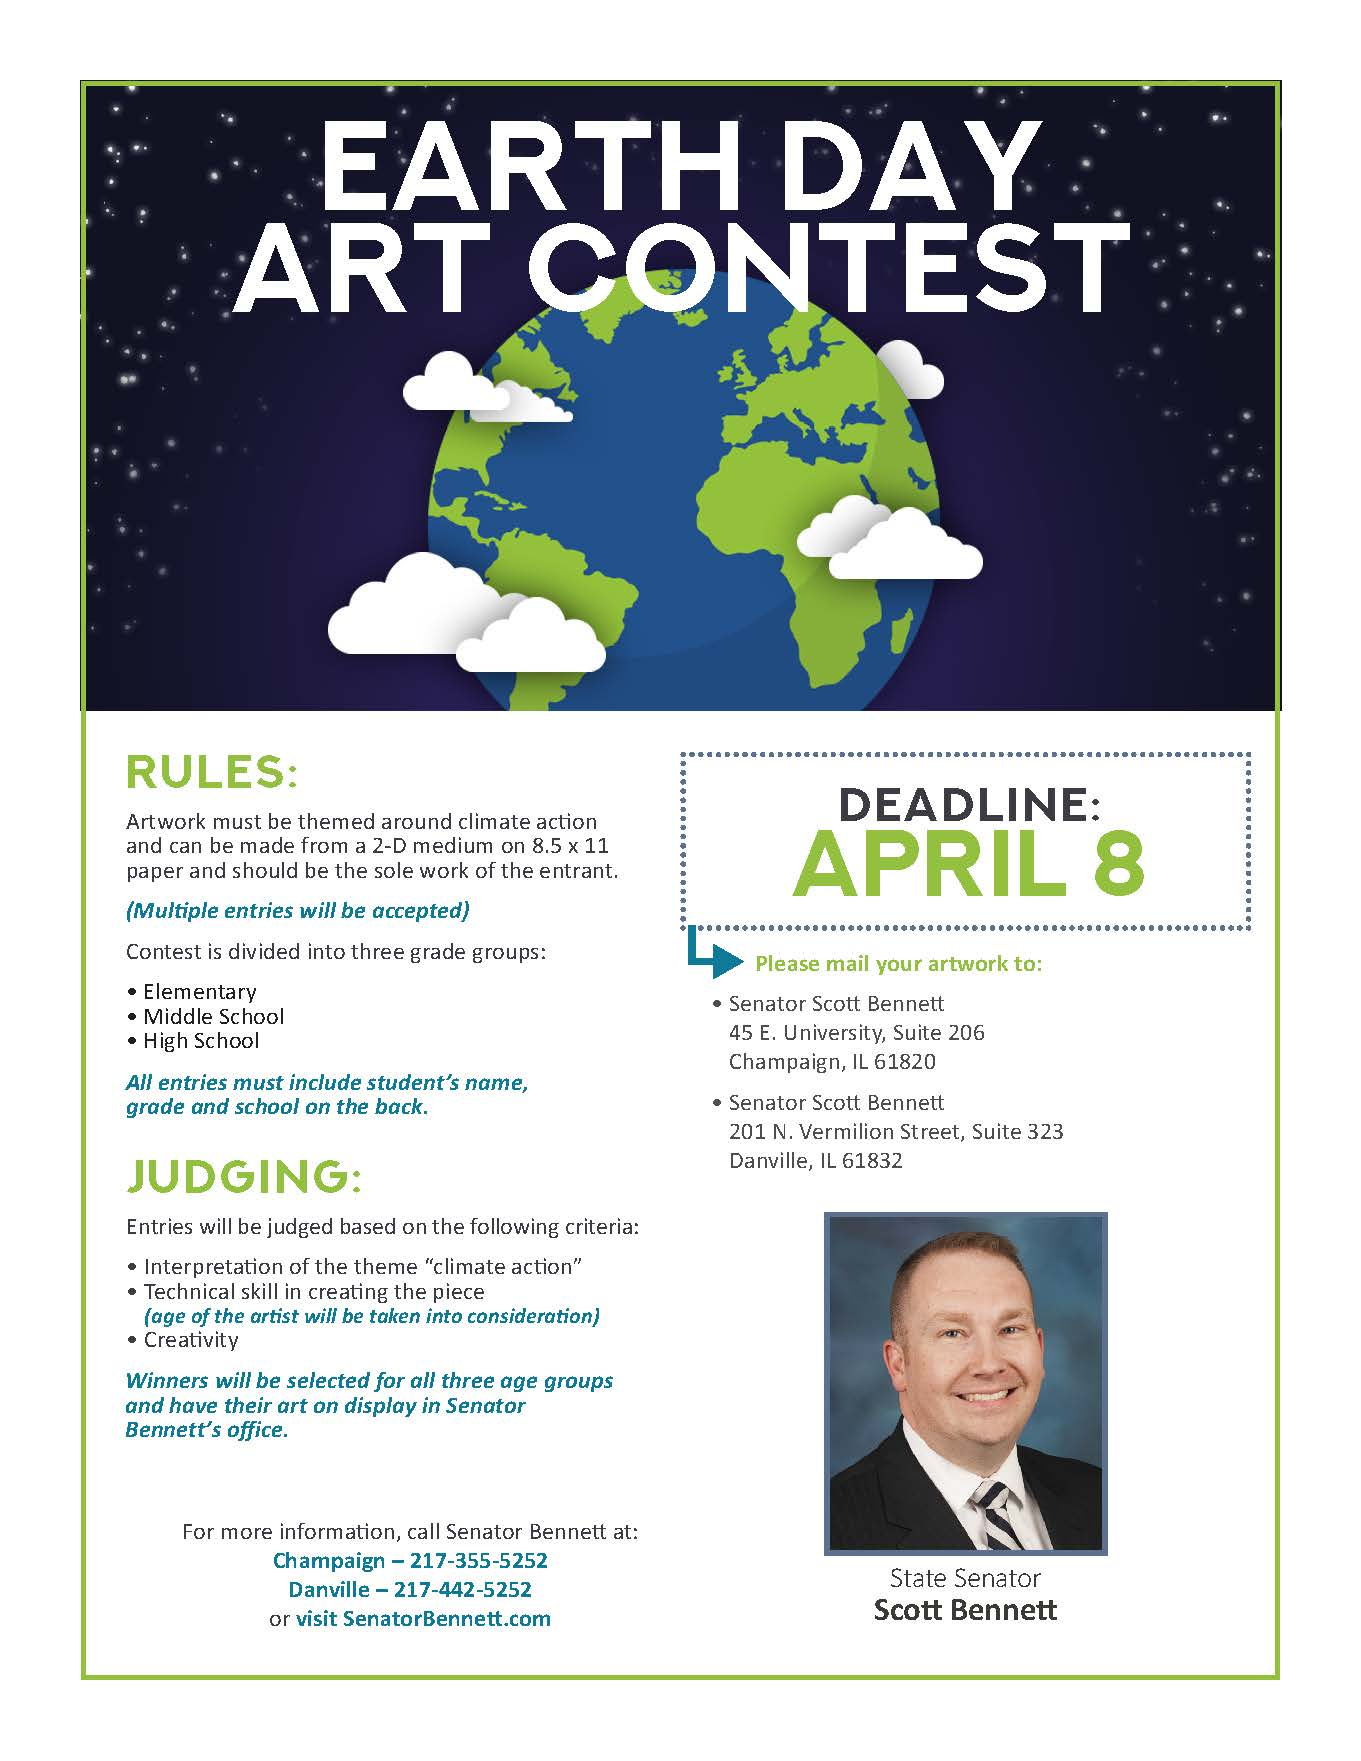 Earth Day Art Contest flyer1